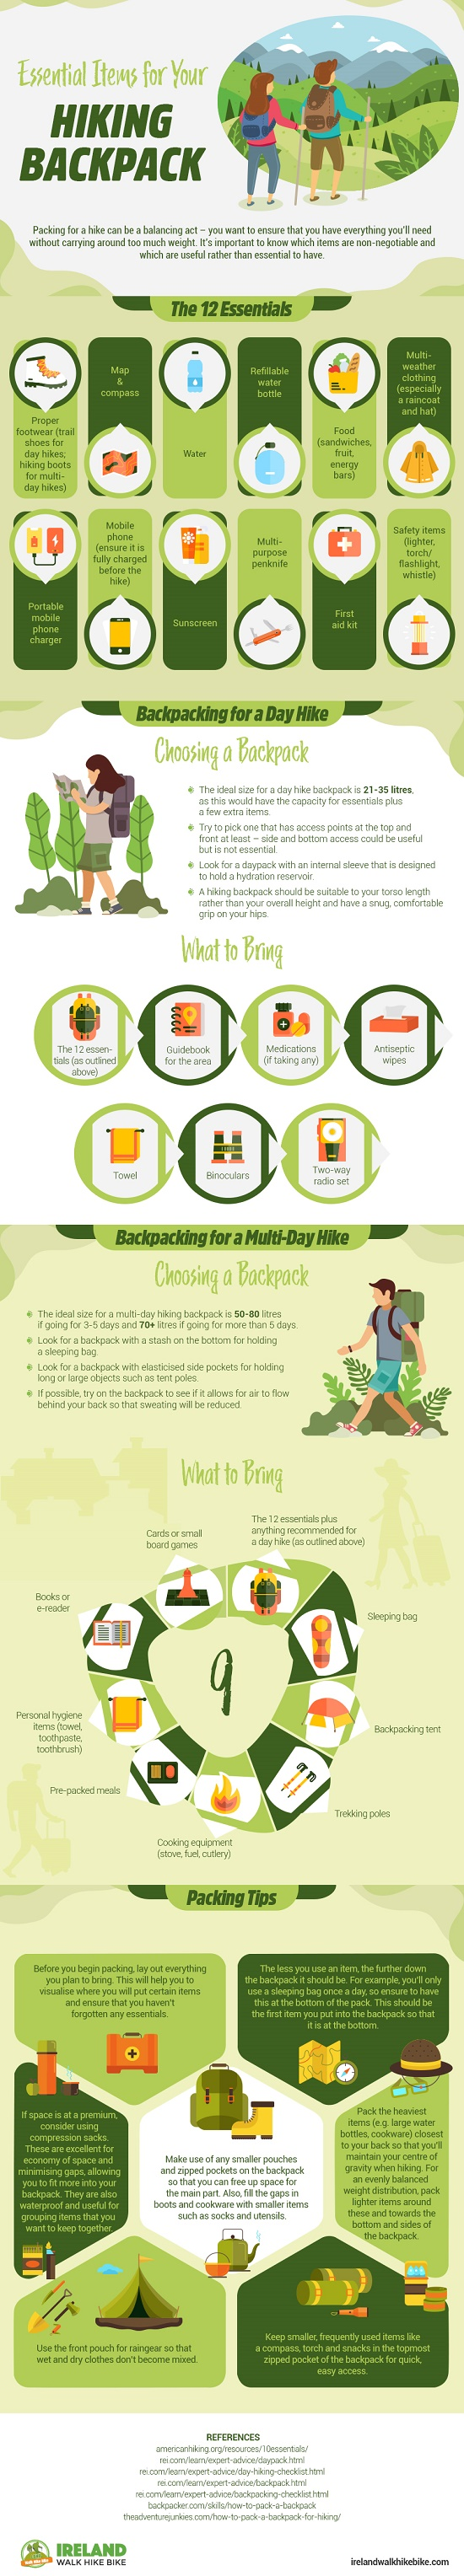 Essential Items for Your Hiking Backpack